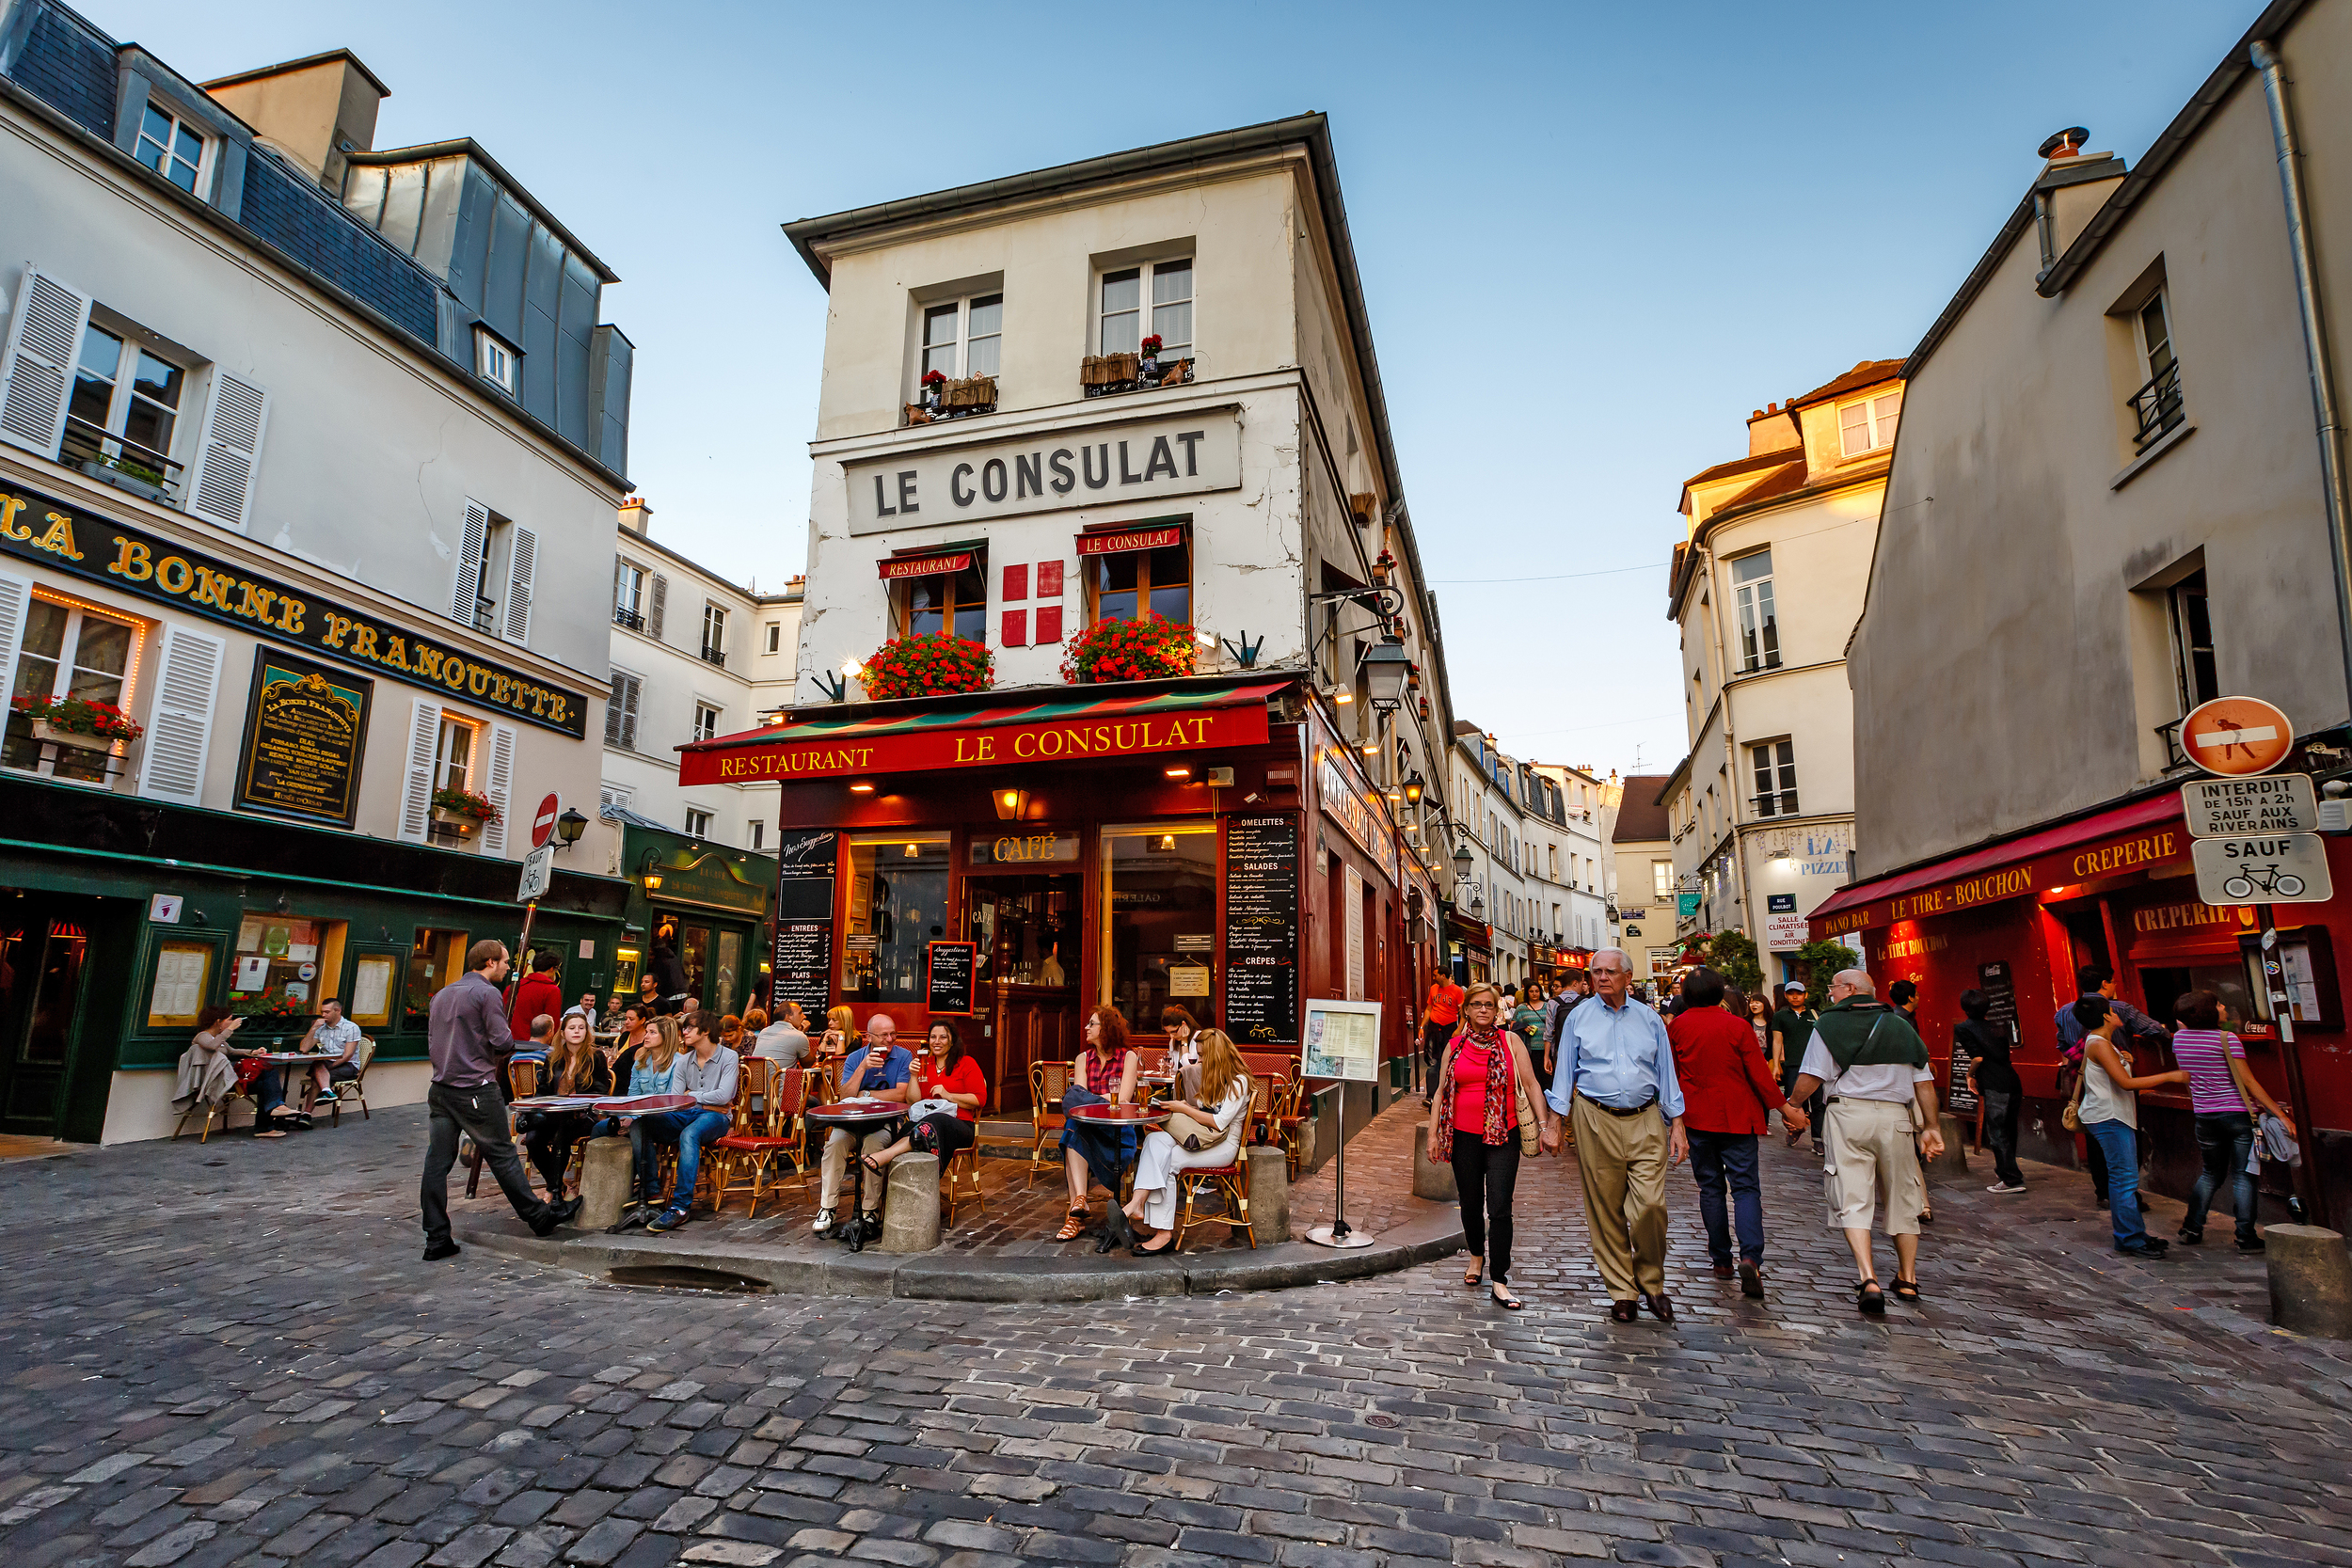 A local street in Paris full of restaurants